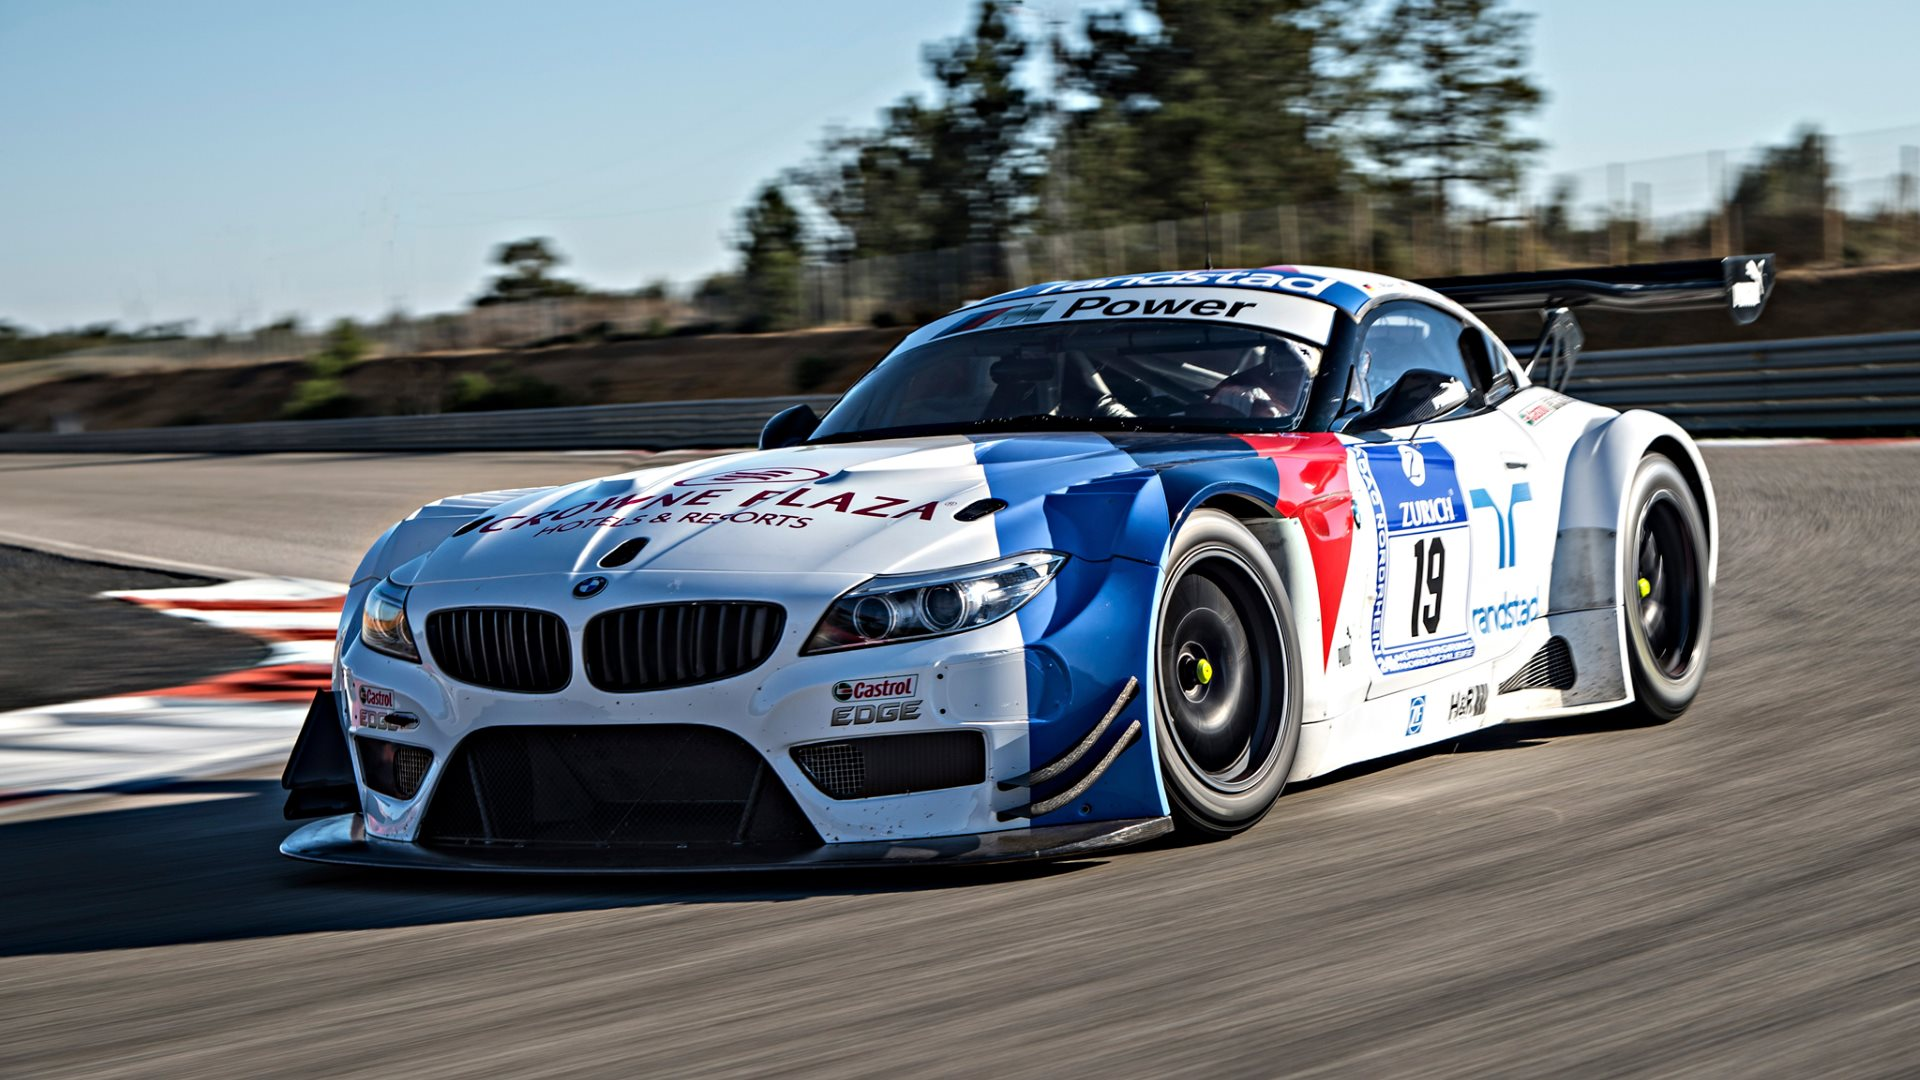 Download Wallpaper 3840x2400 Bmw, Z4, Gte, Race car Ultra HD 4K HD ...